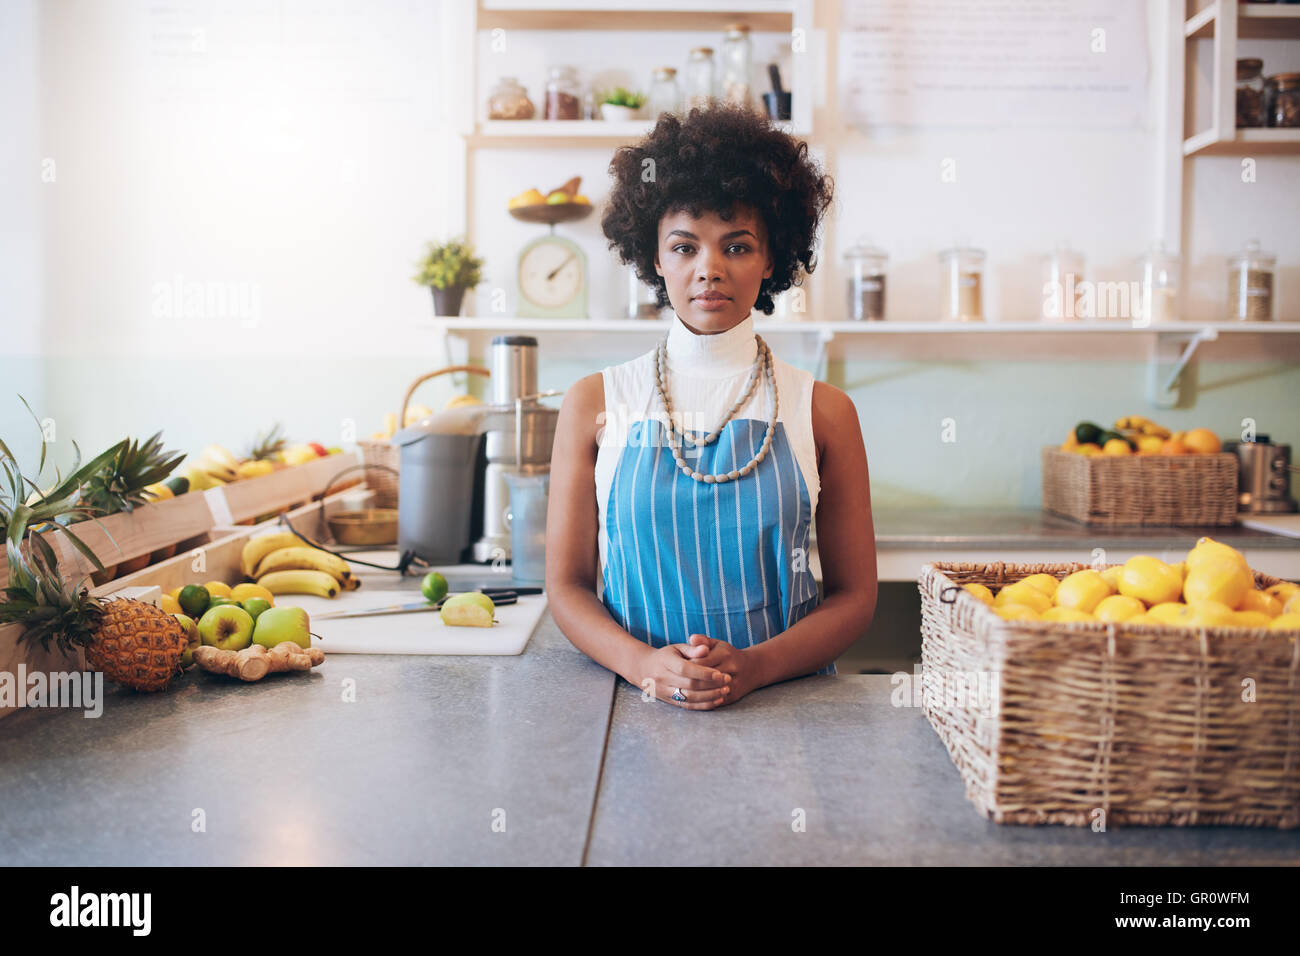 Portrait of young african woman wearing apron standing behind juice bar counter looking at camera. Stock Photo